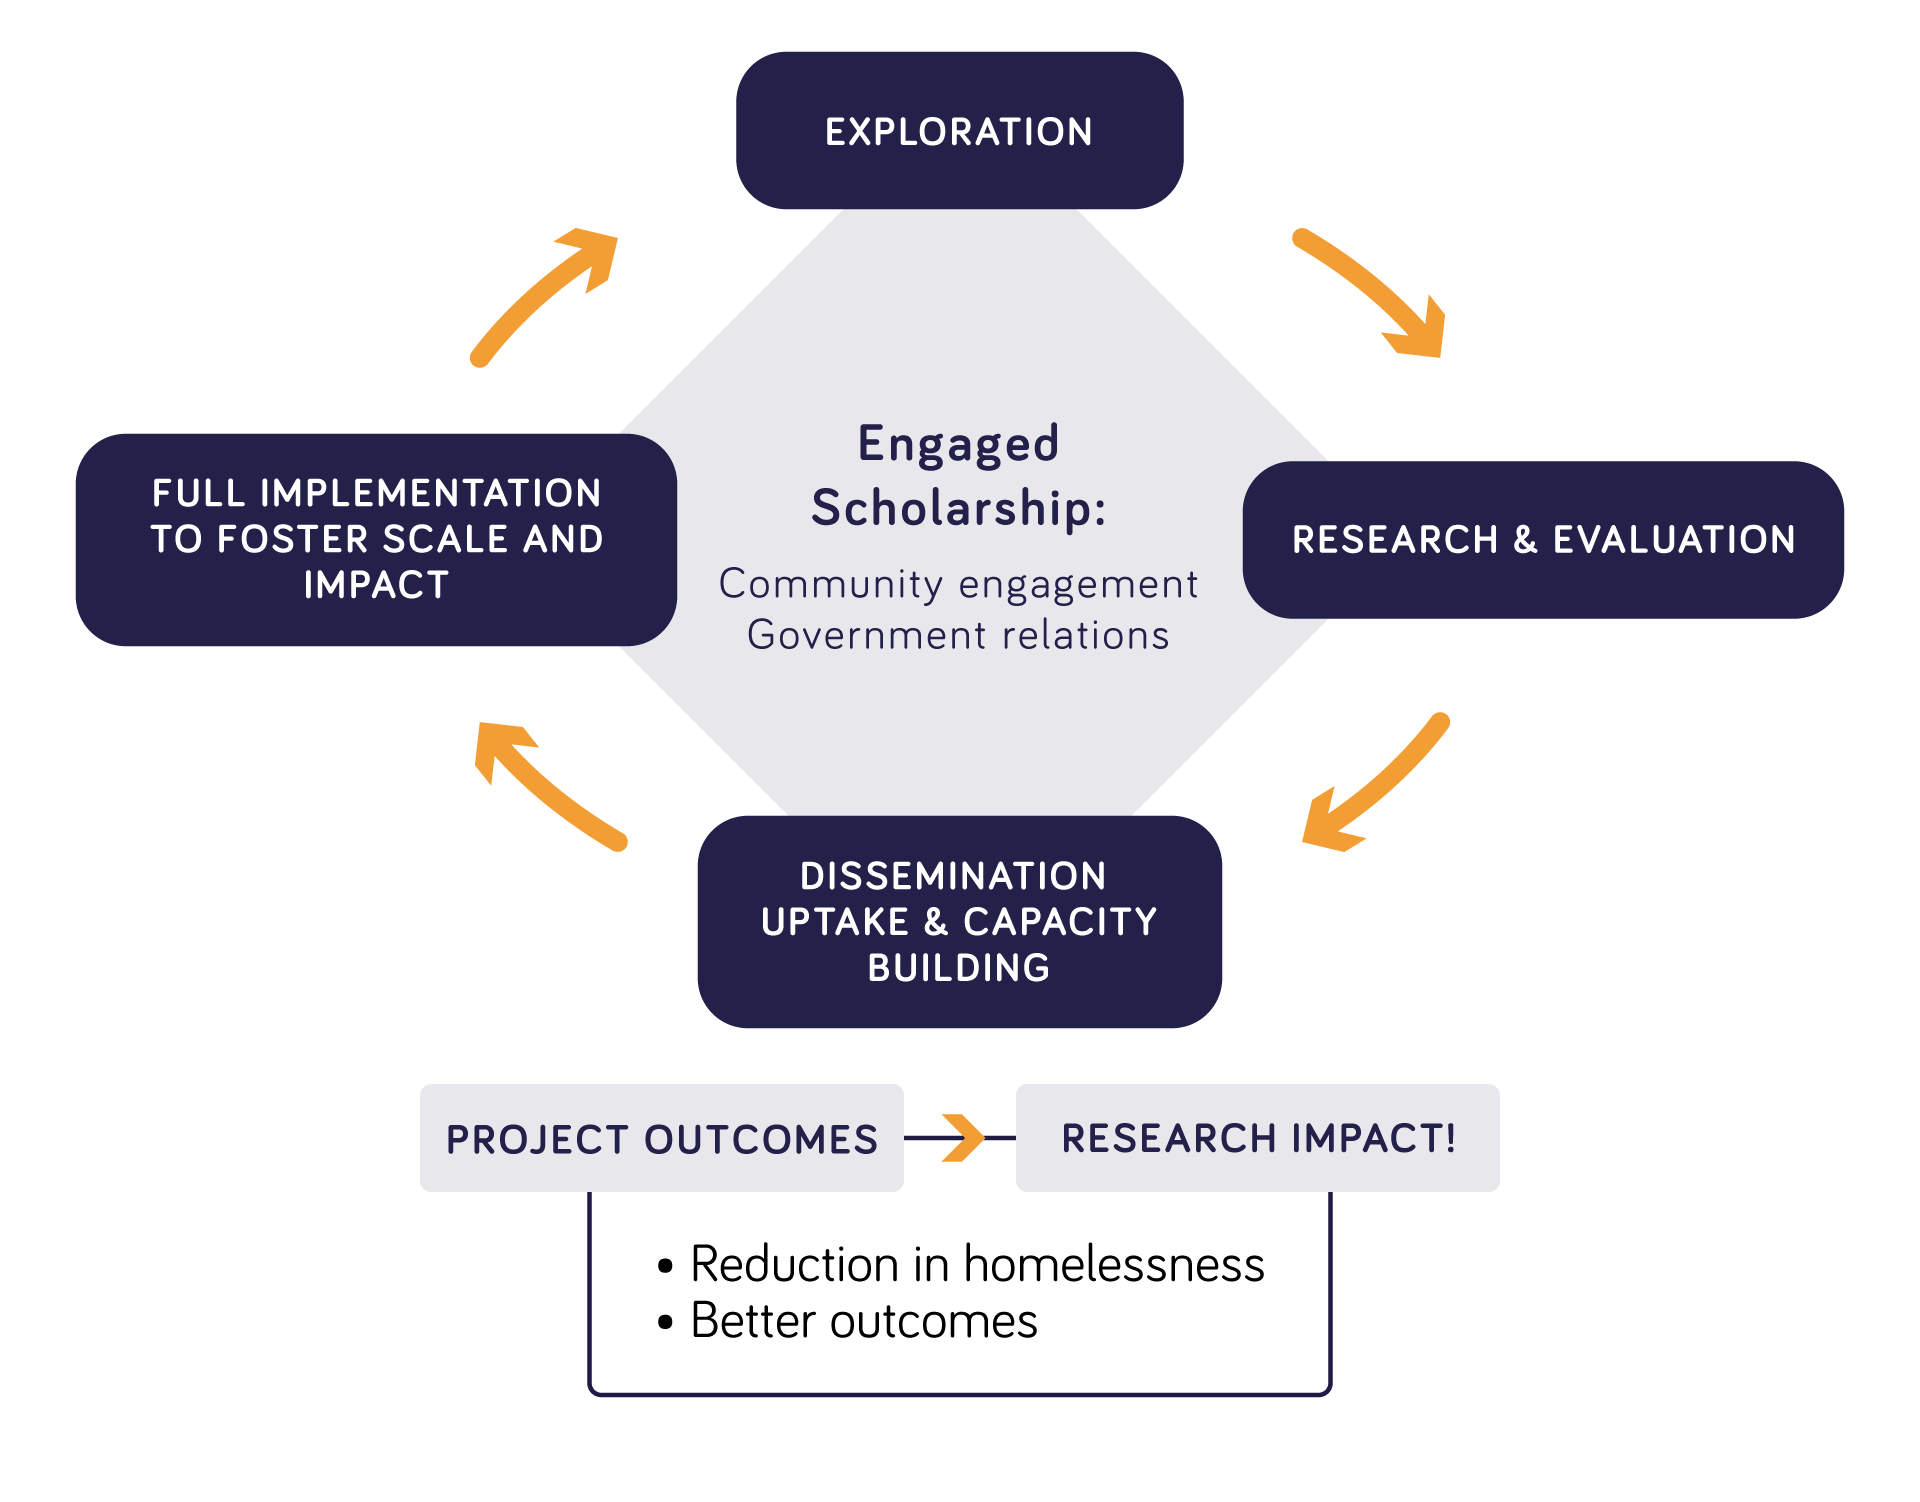 COH's Research to Impact Cycle